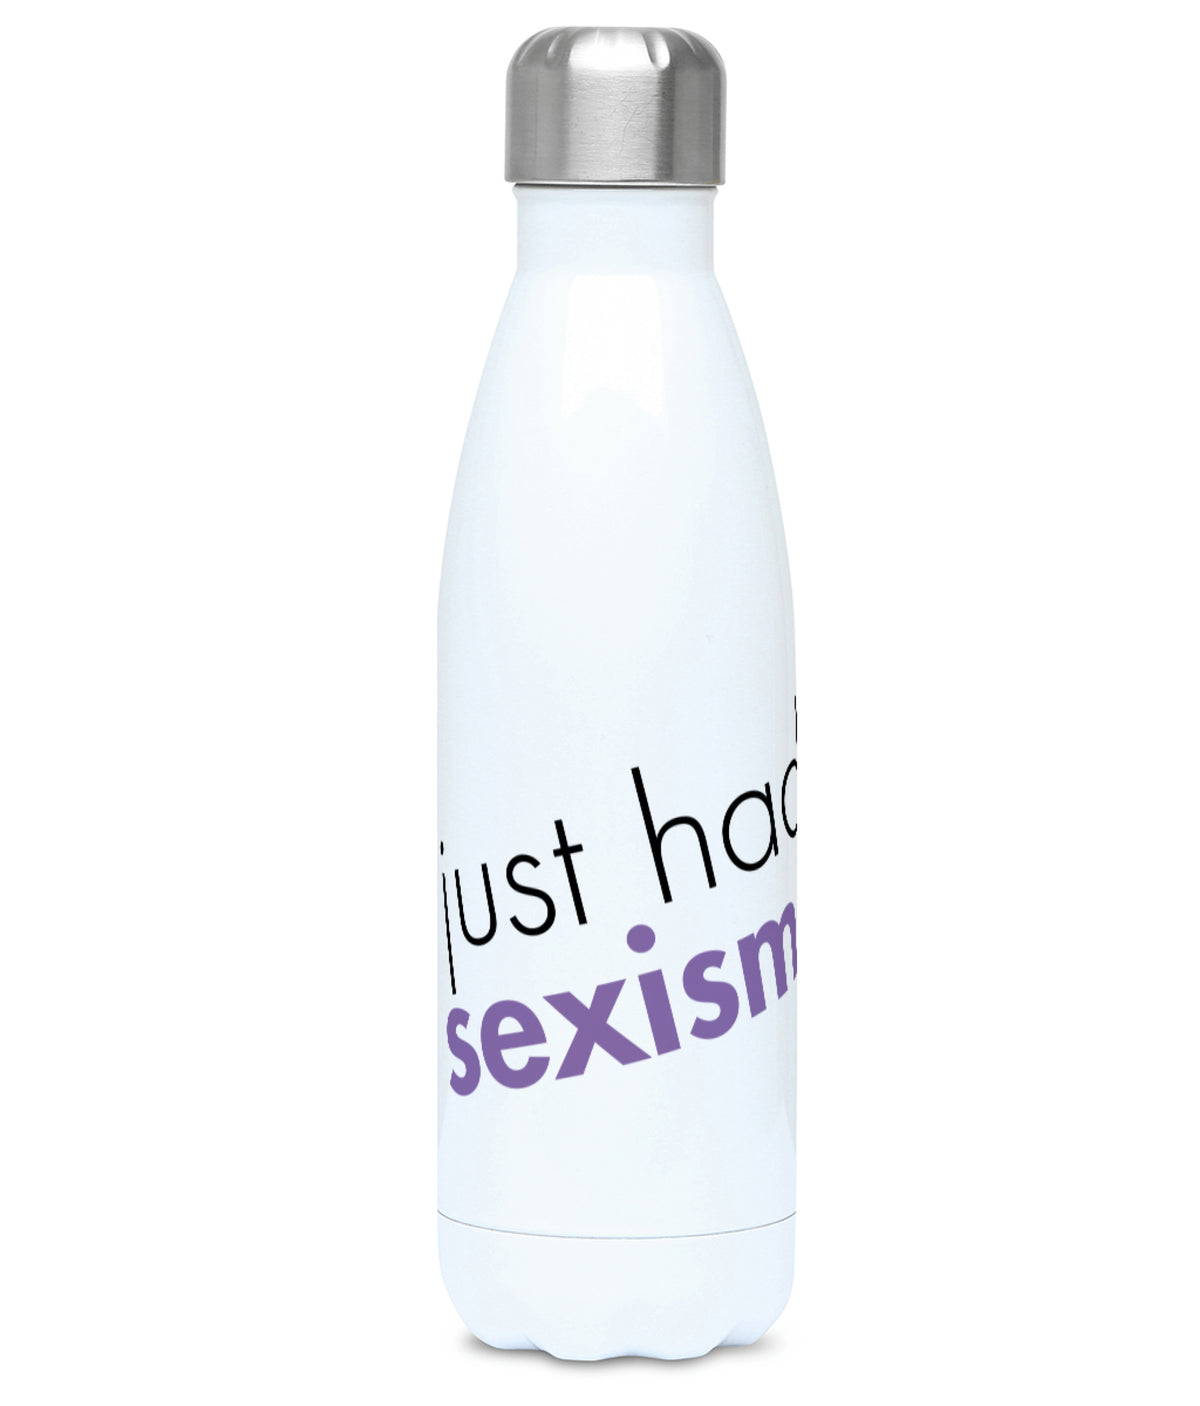 Feminist Water Bottle - I Just Had Sexism - Front